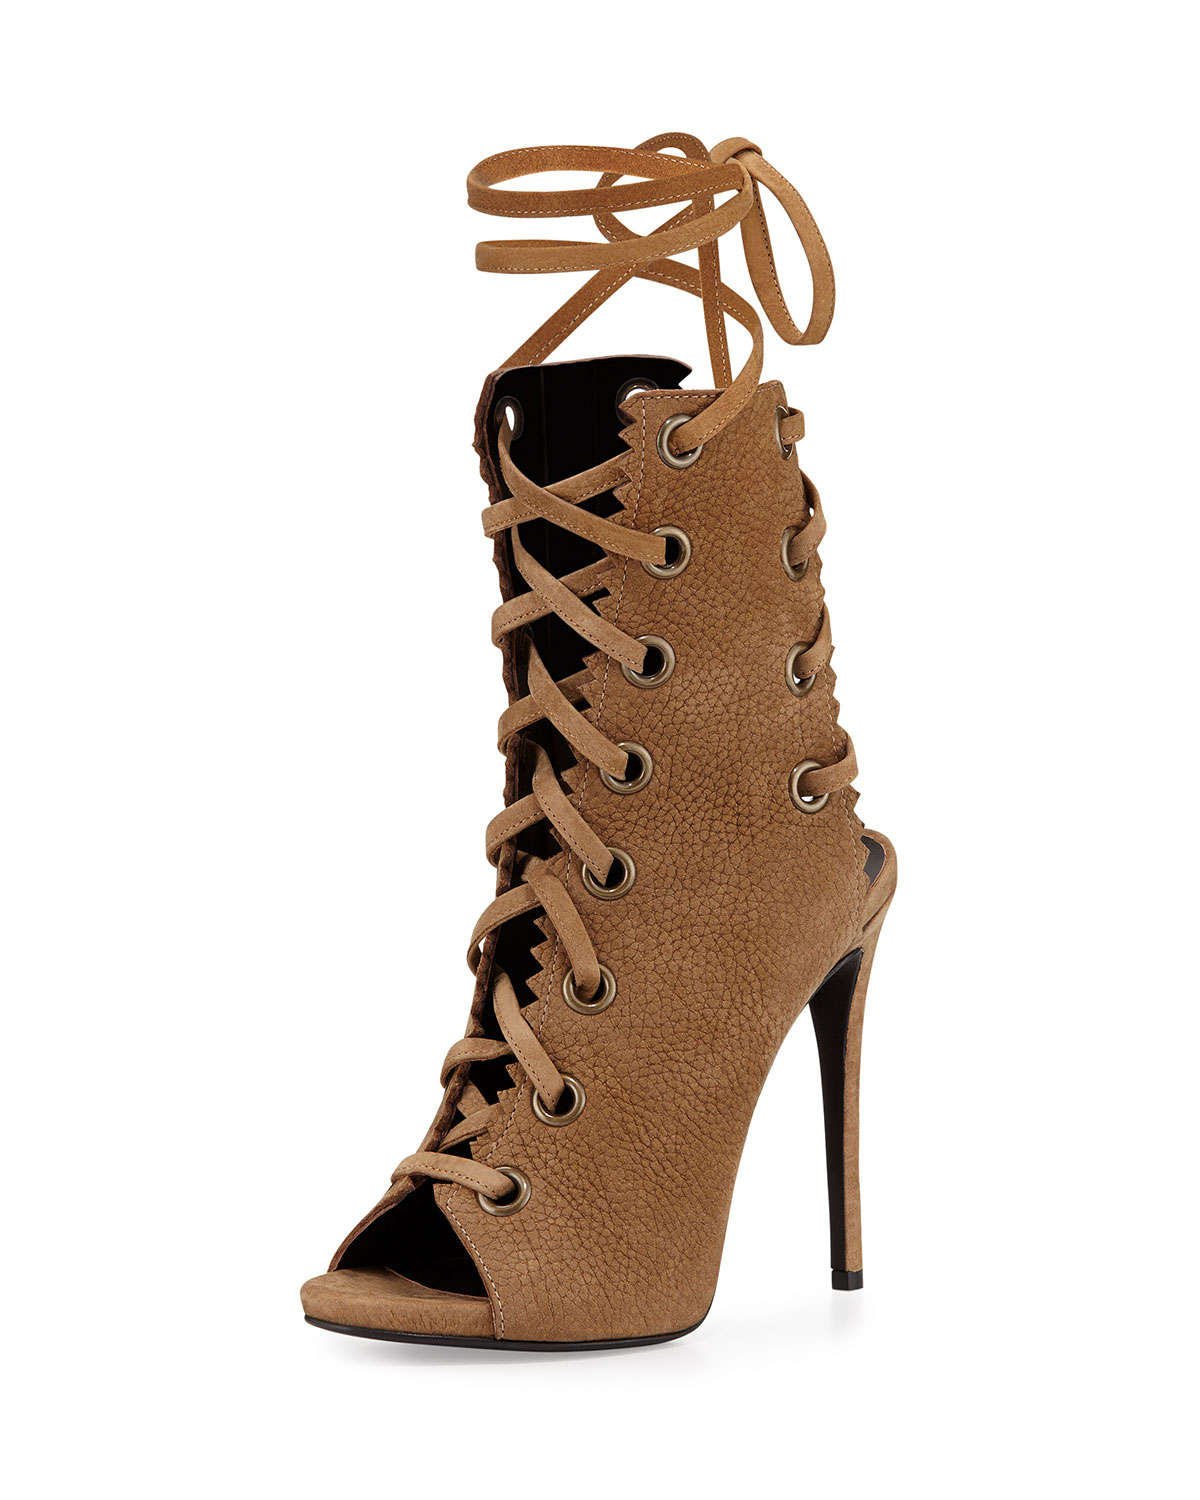 discount order sale with paypal Giuseppe Zanotti Suede Gladiator... TbCx5O8nk